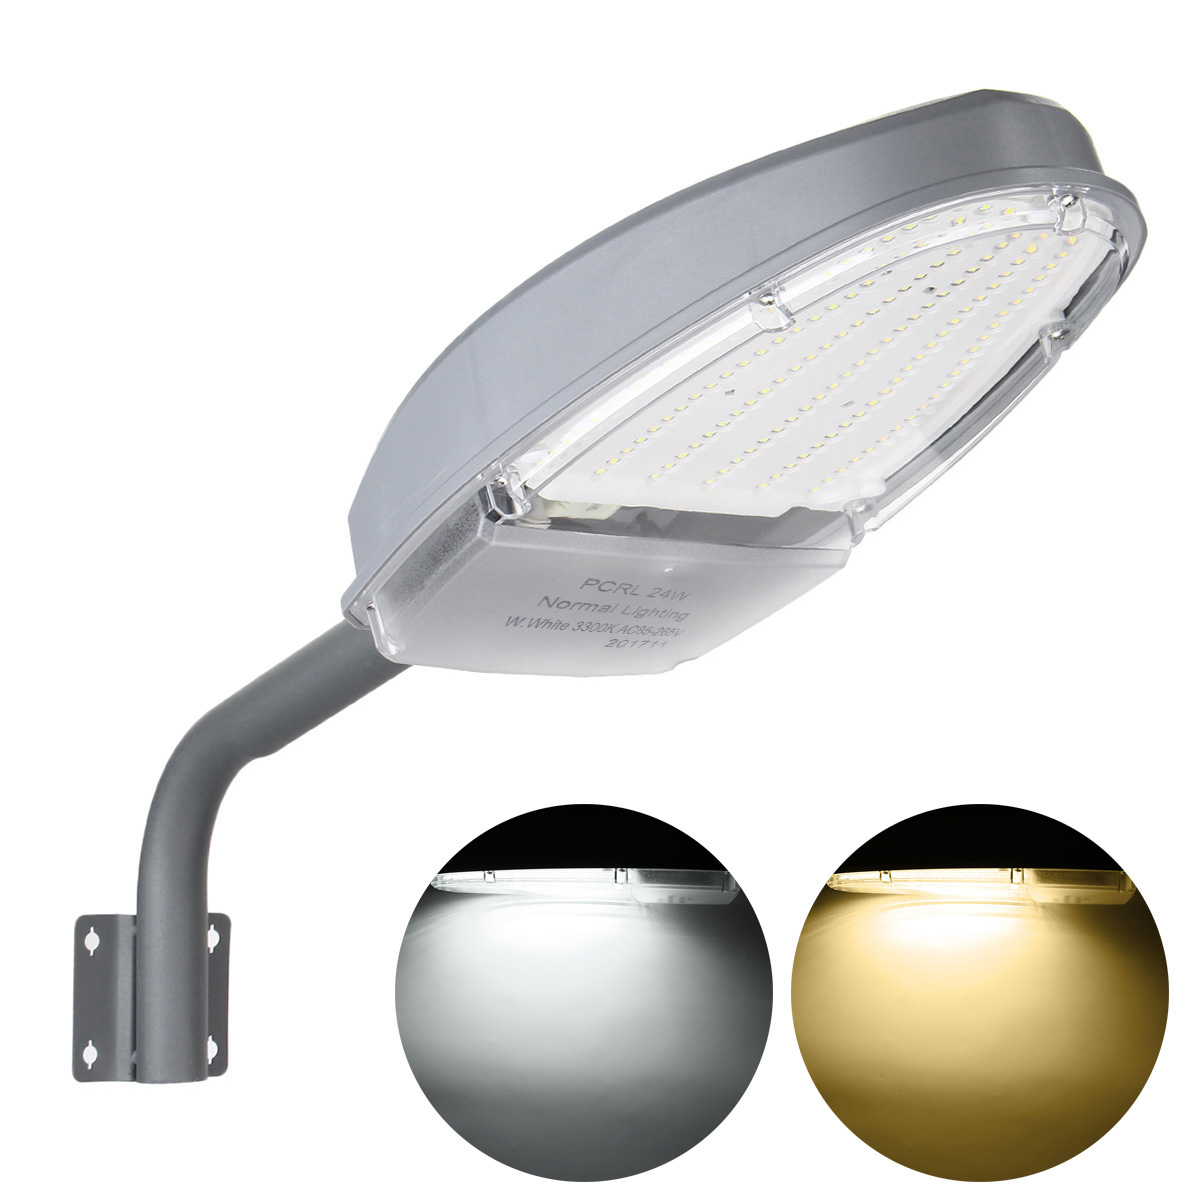 Alway Bright 24W LED Street Light Flood Road Light Garden Lamp Outdoor Yard LED Security Lighting AC85-265V Waterproof